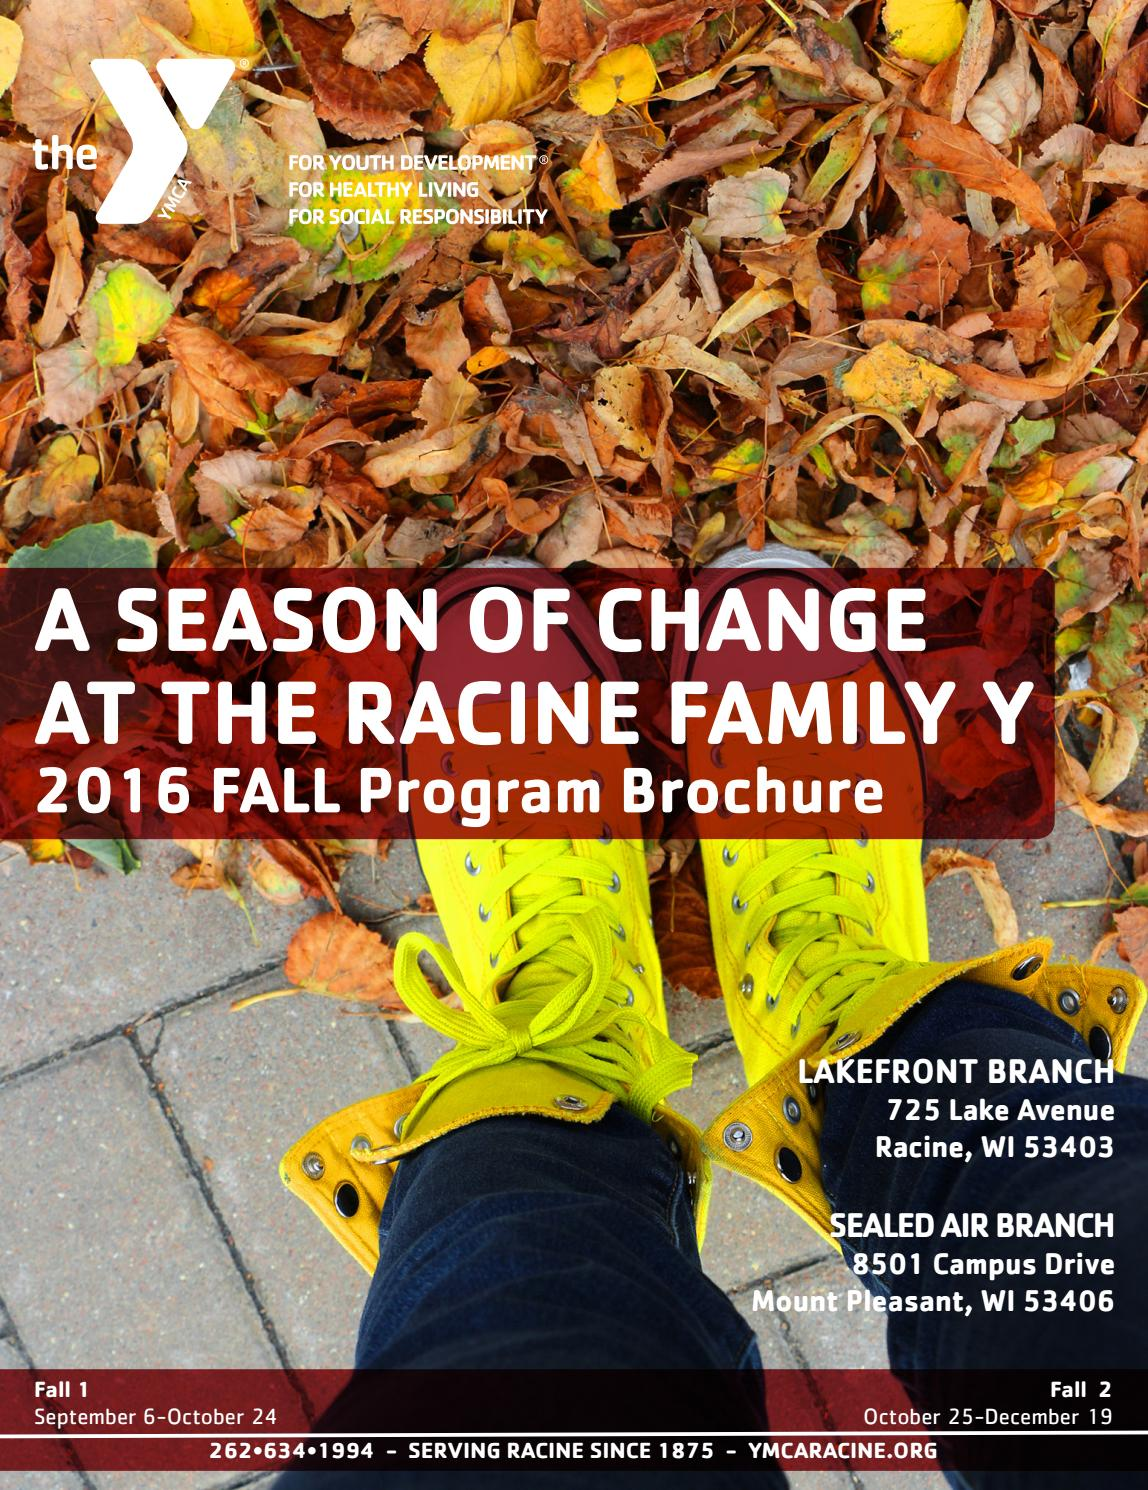 Racine family y fall 2016 program brochure by racine for Academie de cuisine summer camp